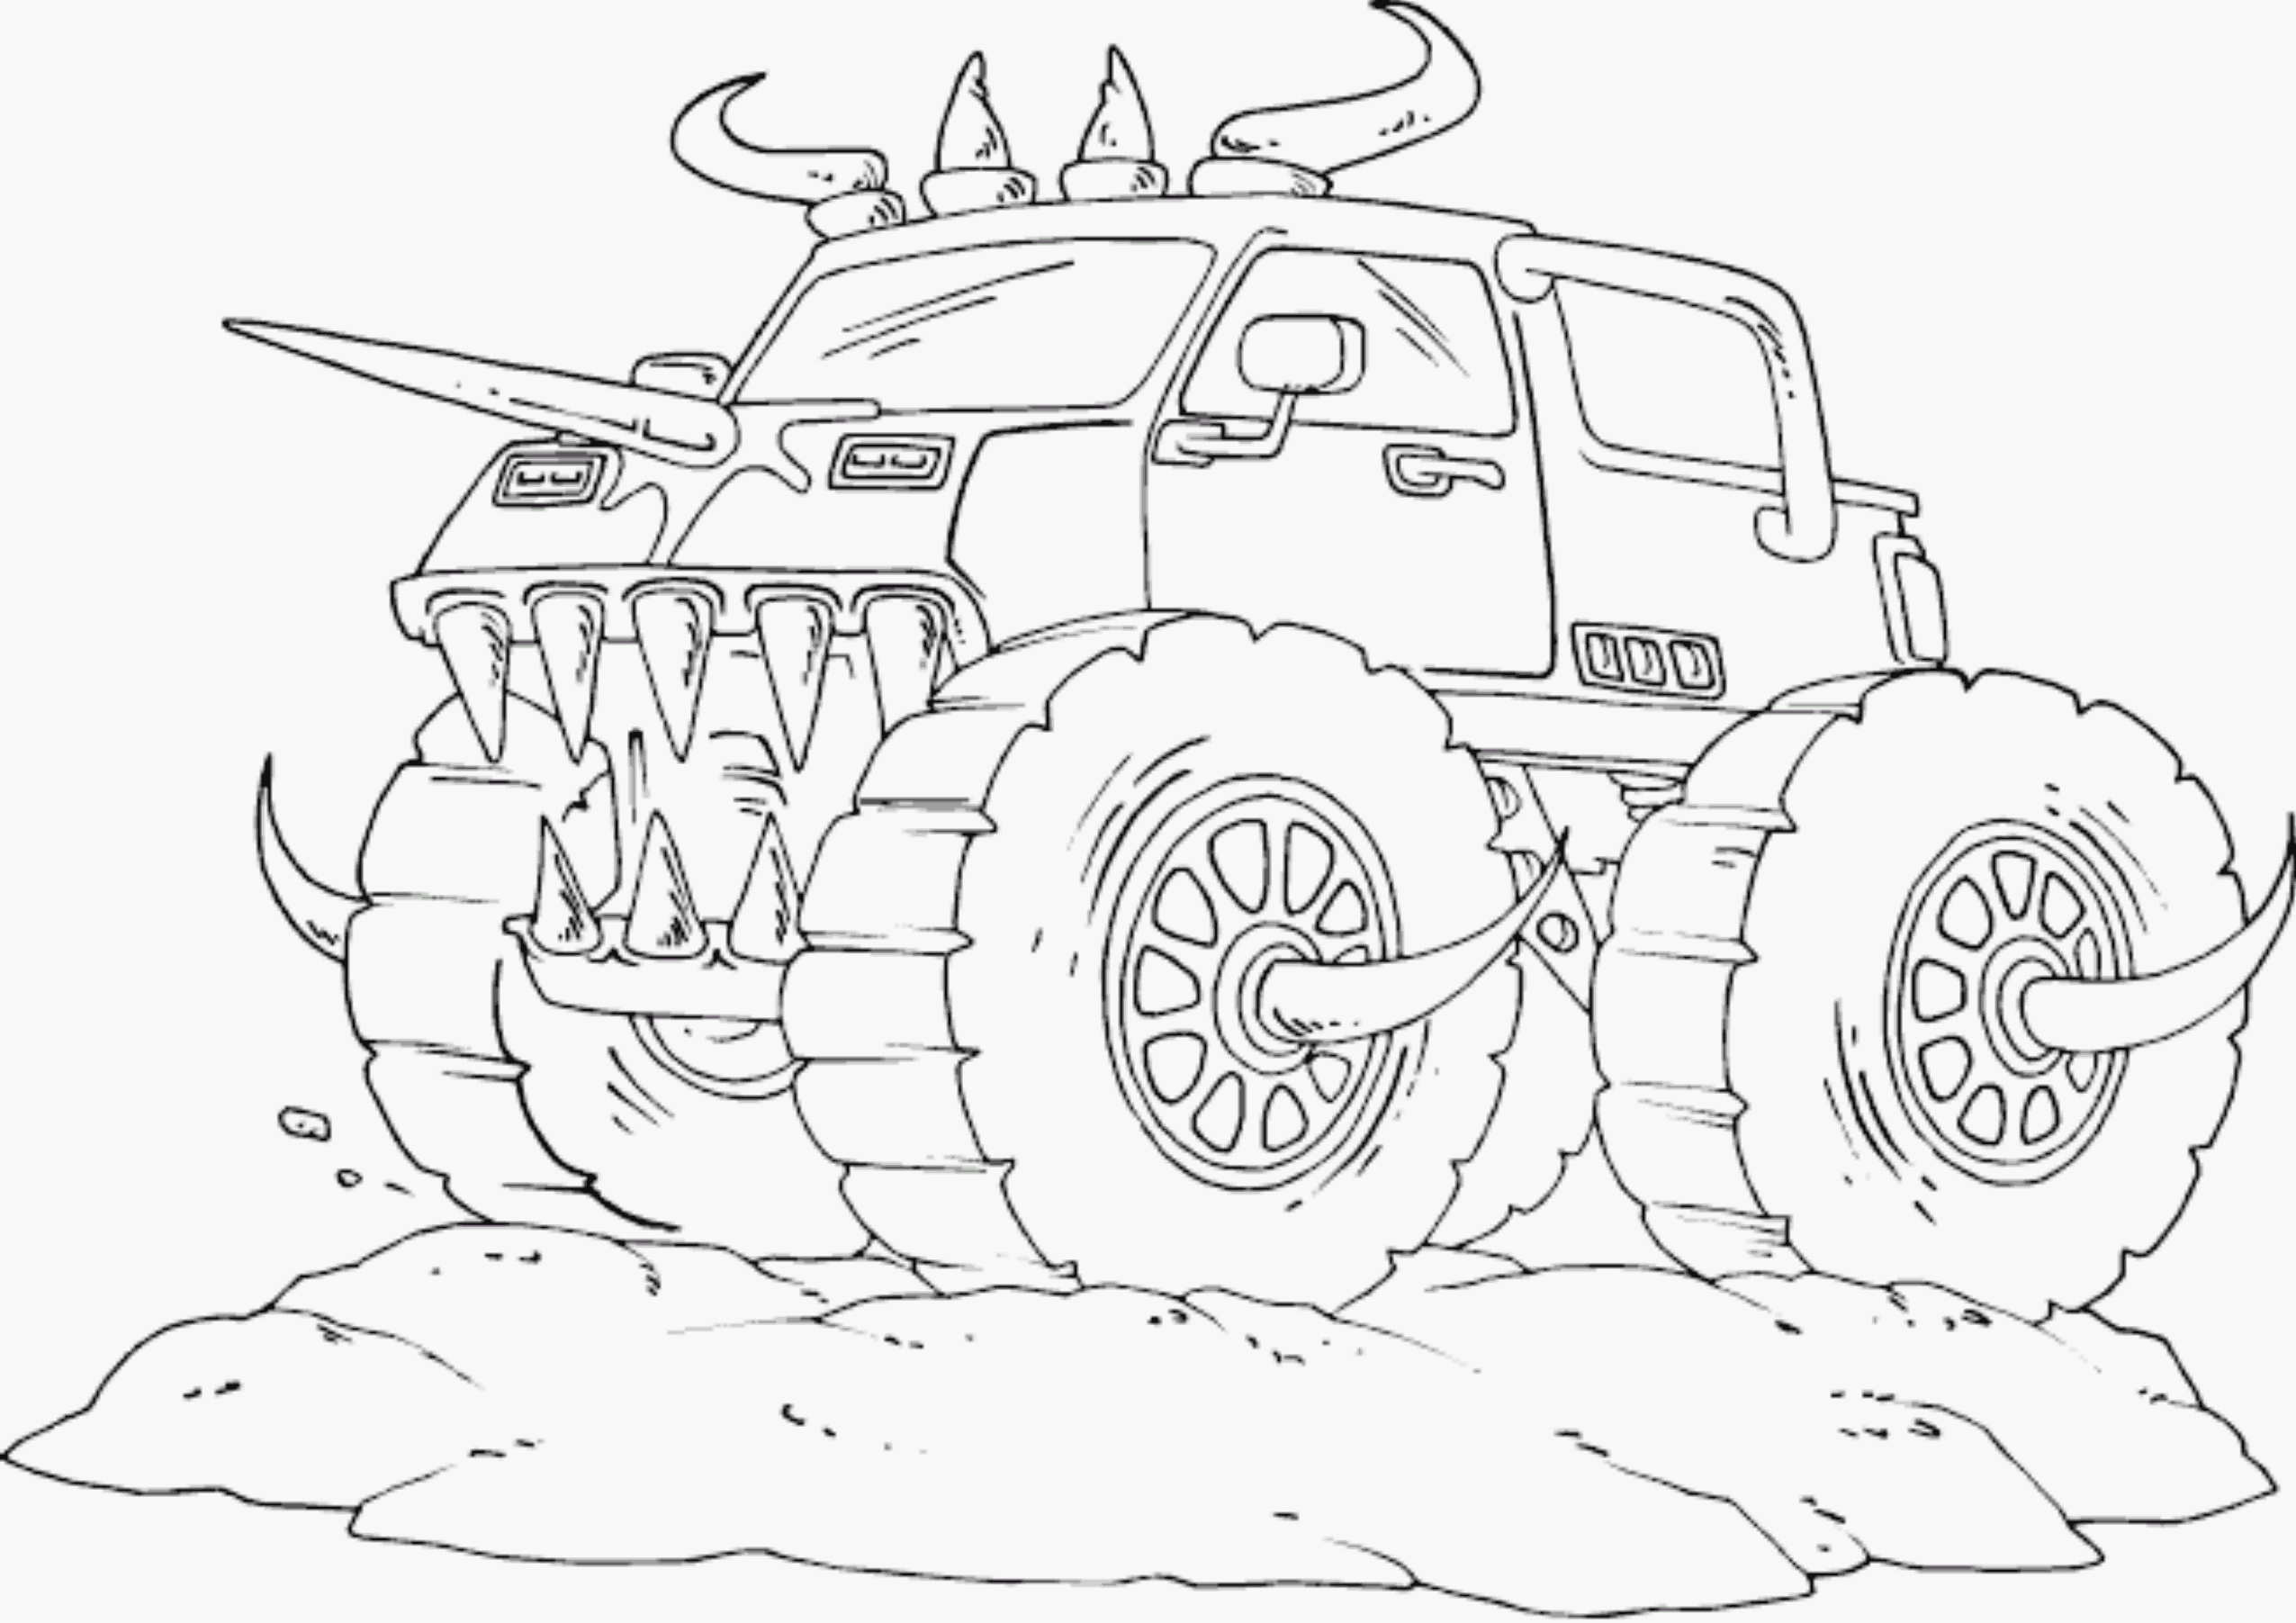 Truck Drawing At Getdrawings Com Free For Personal Use Truck